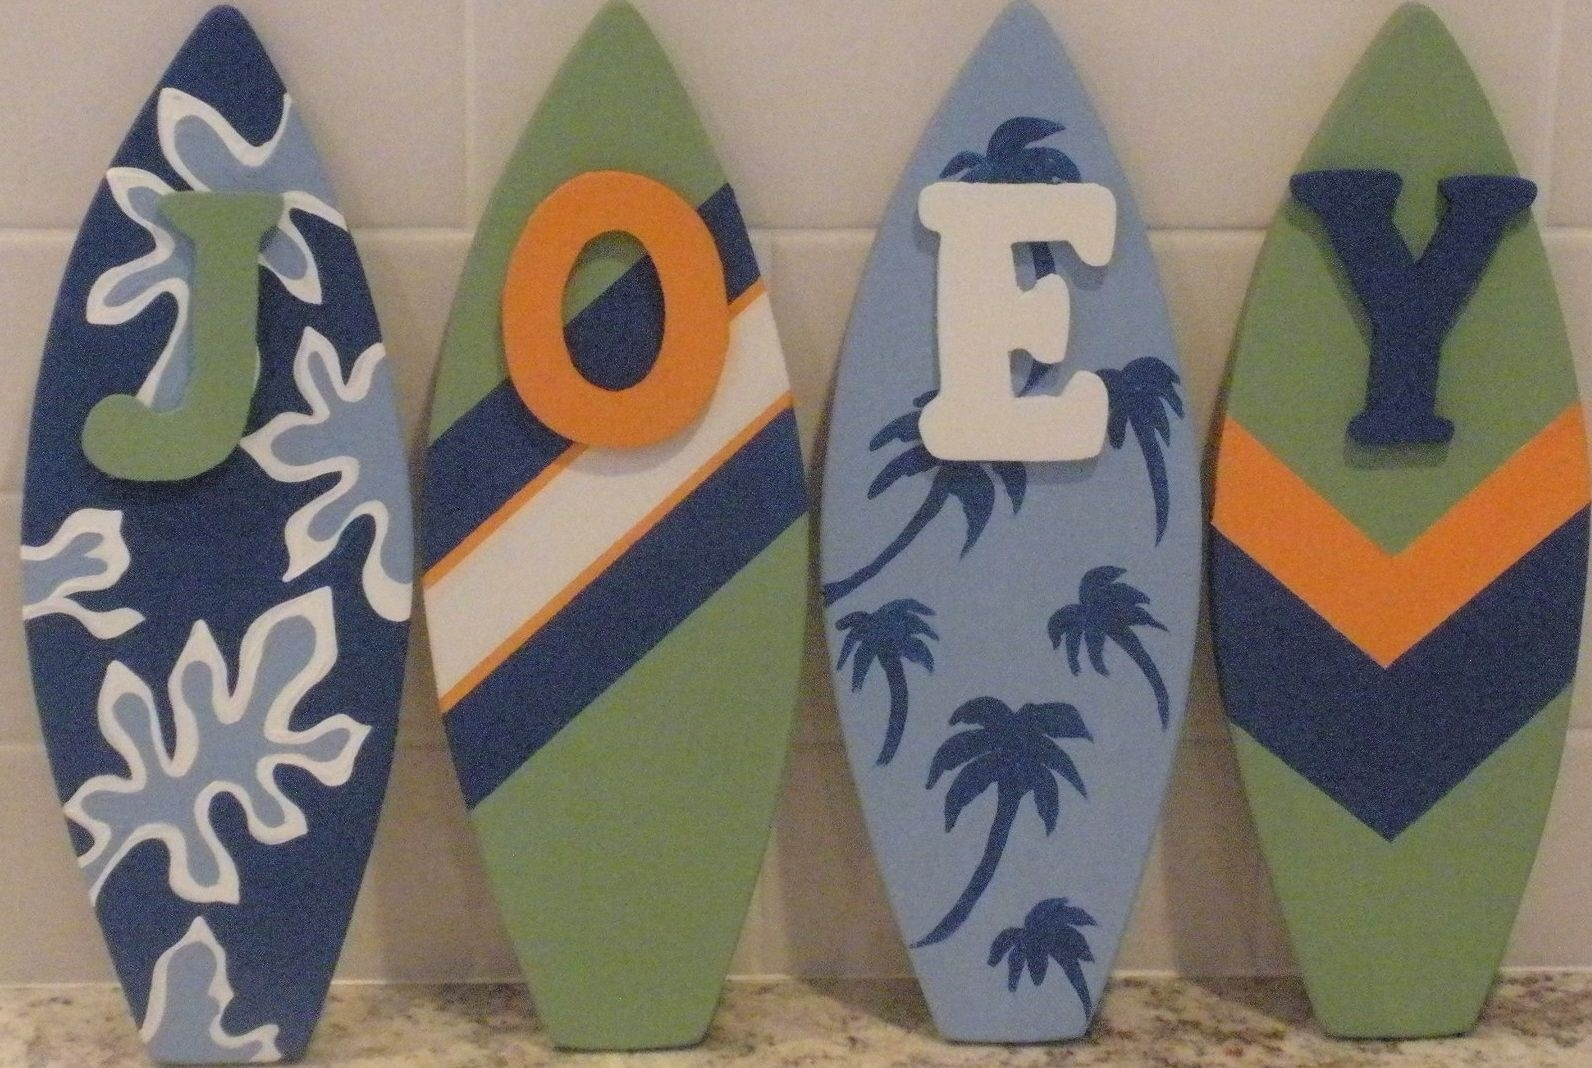 Custom Decorative Surfboard Wall Signs And Decor For Best And Newest Surfboard Wall Art (View 4 of 20)